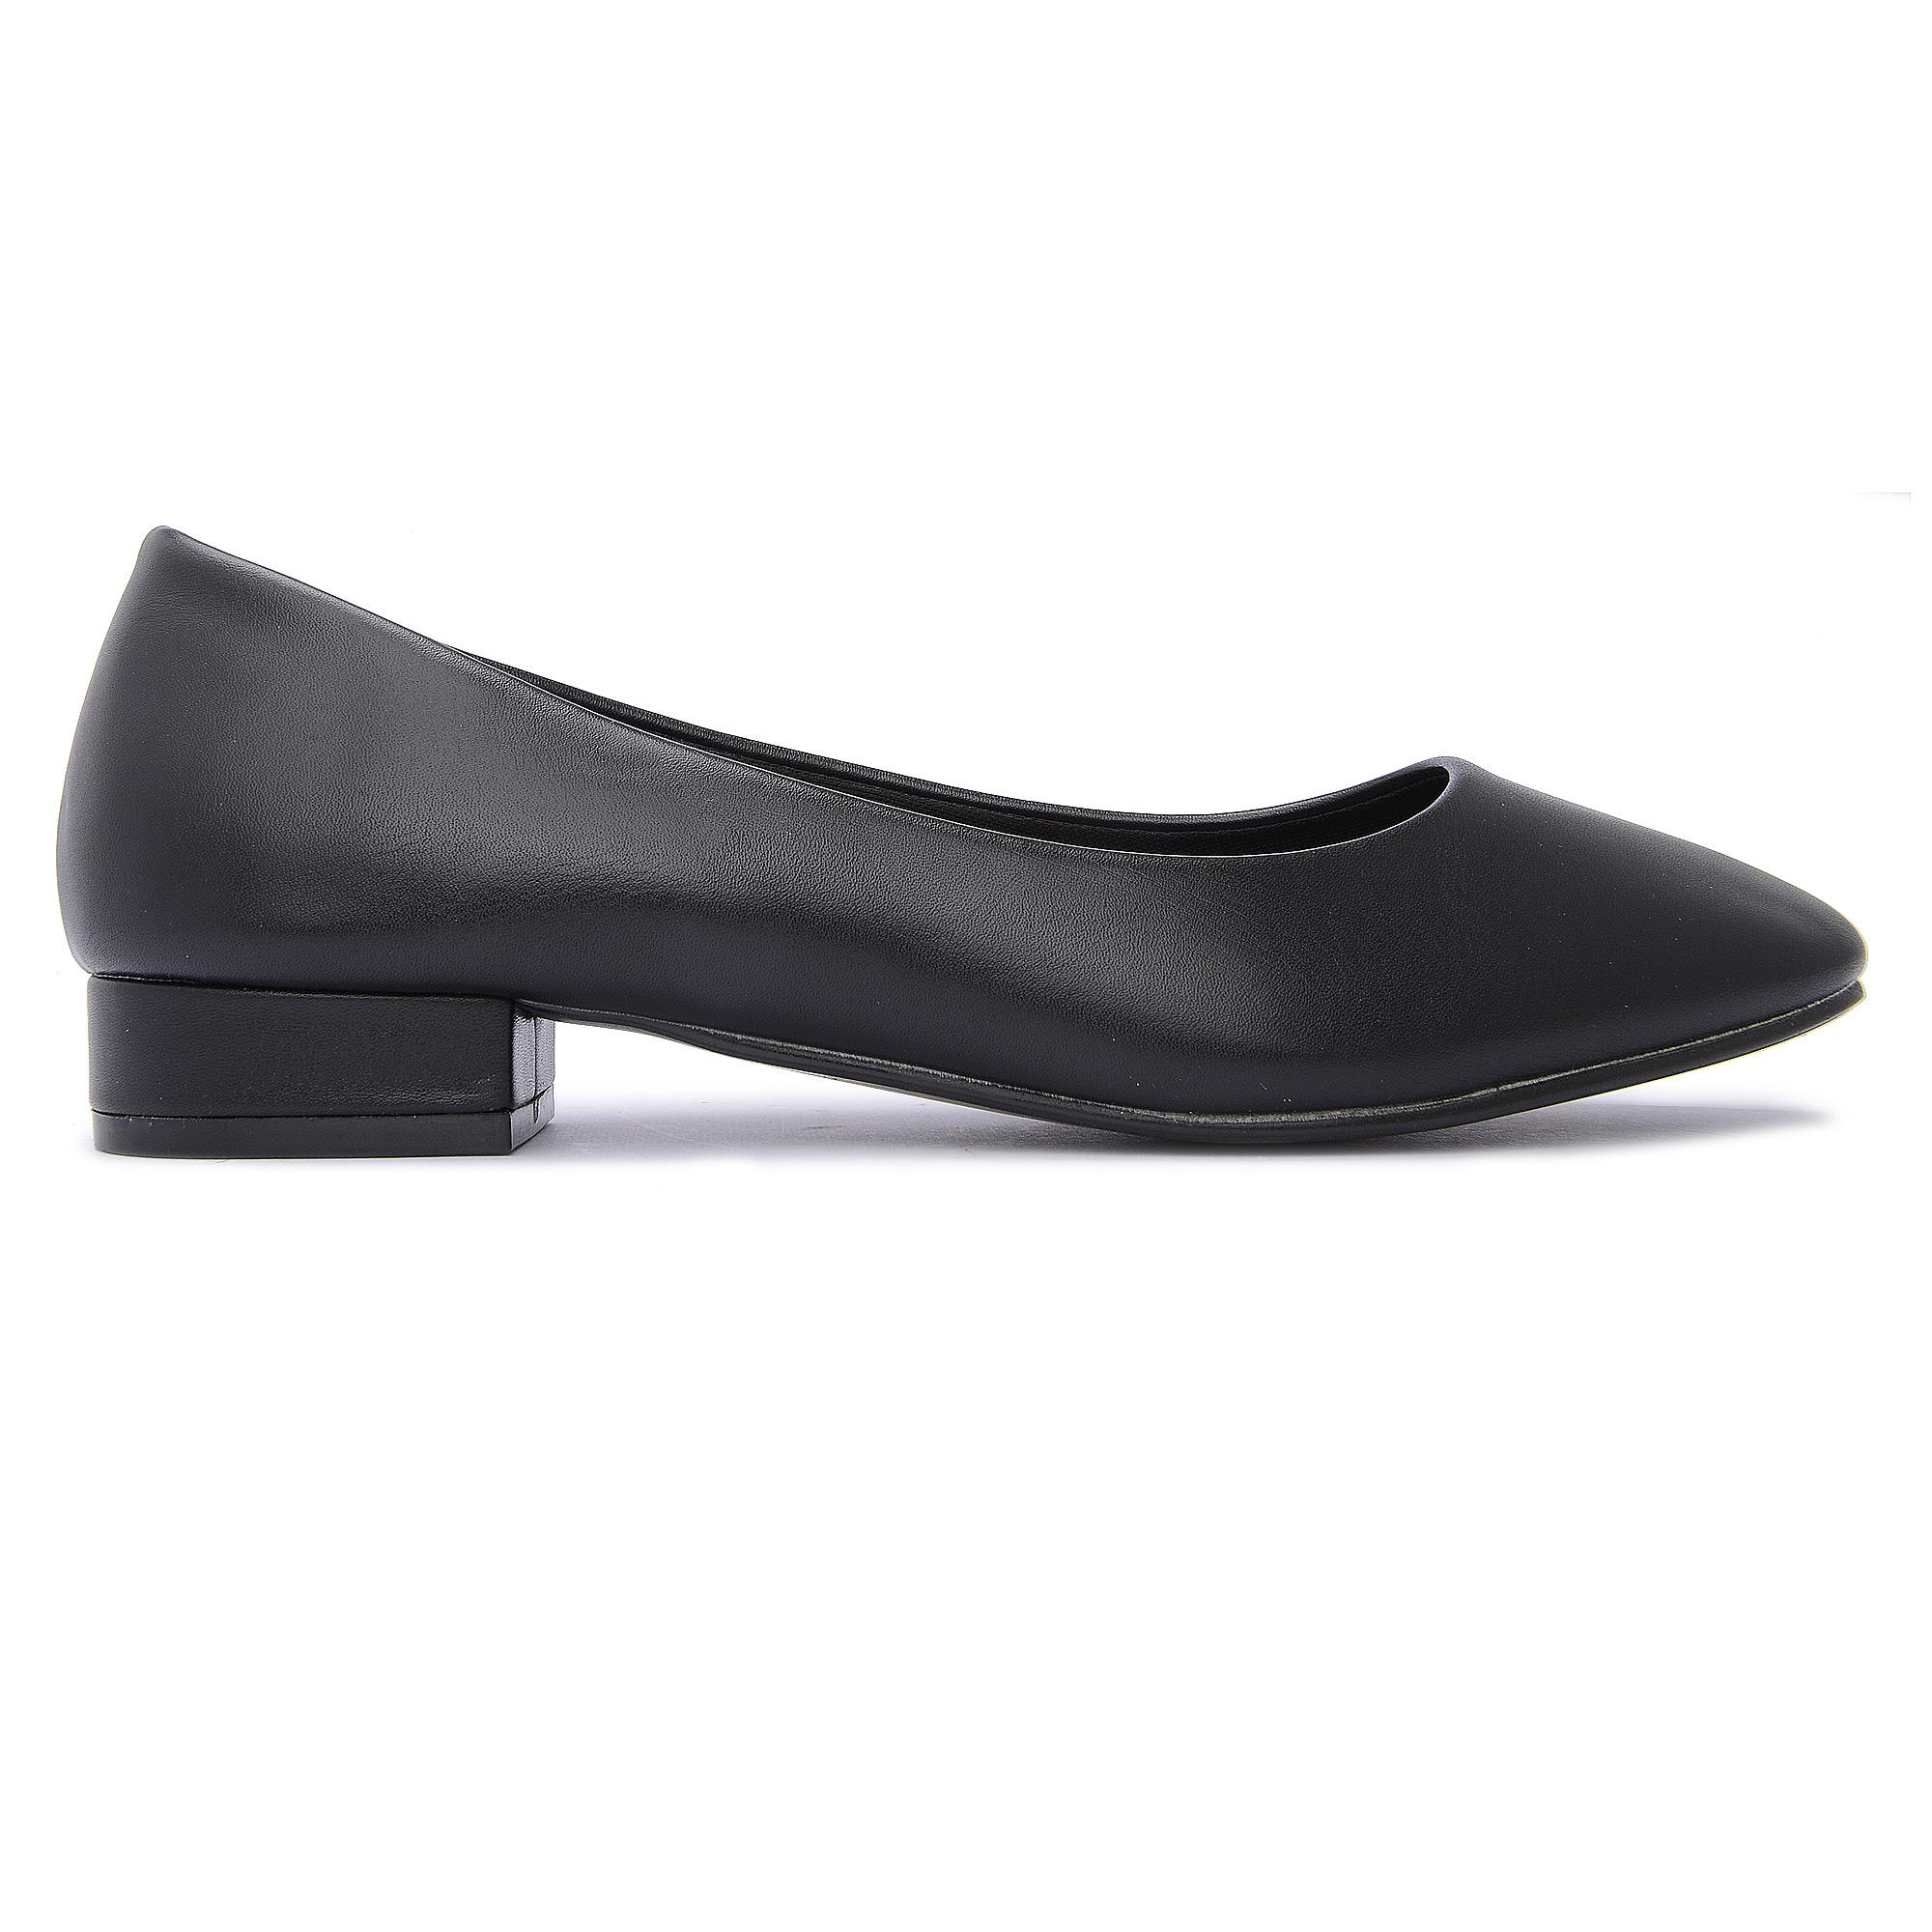 Bata Ladies Heels 6116028 By Bata.